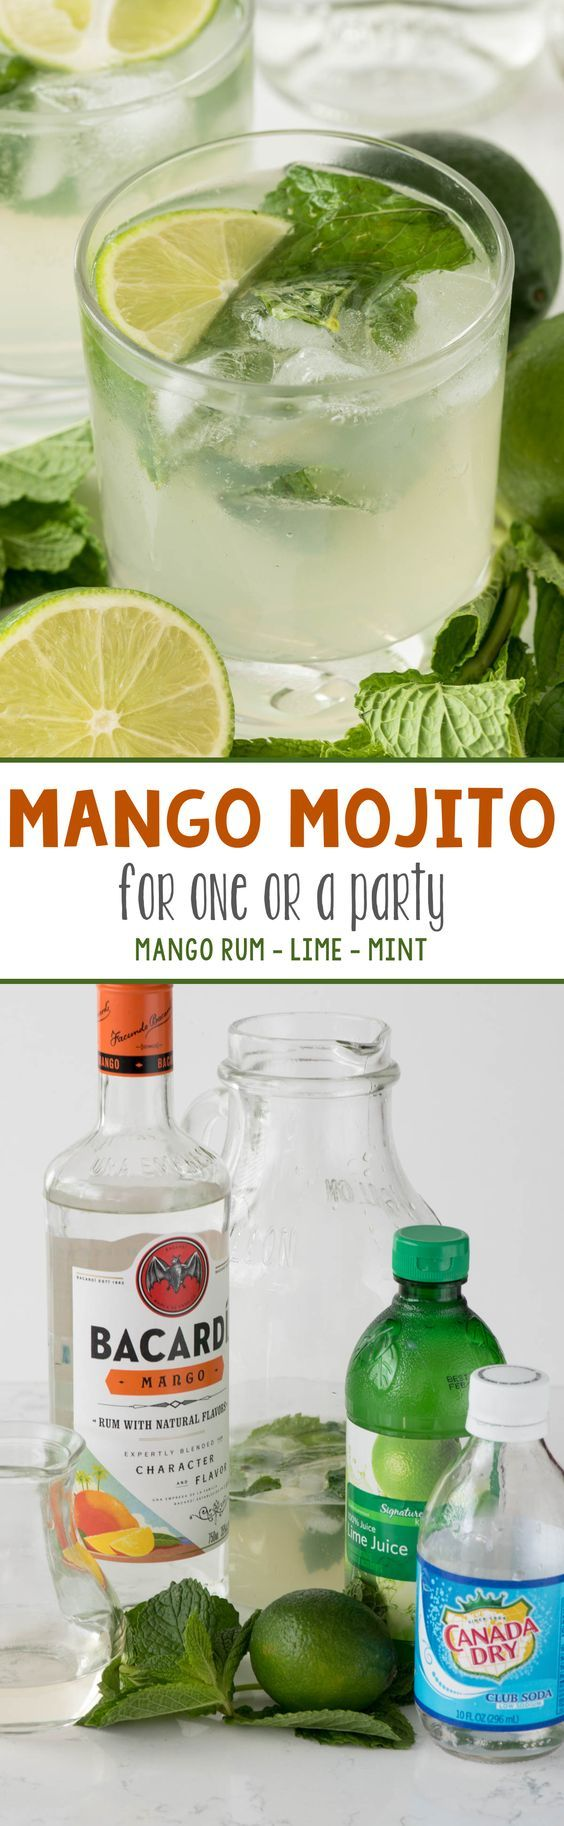 Mango Mojito - this easy cocktail recipe is like drinking a mojito at the beach! Infused with mango flavor, it's a simple drink for one or it makes a pitcher!